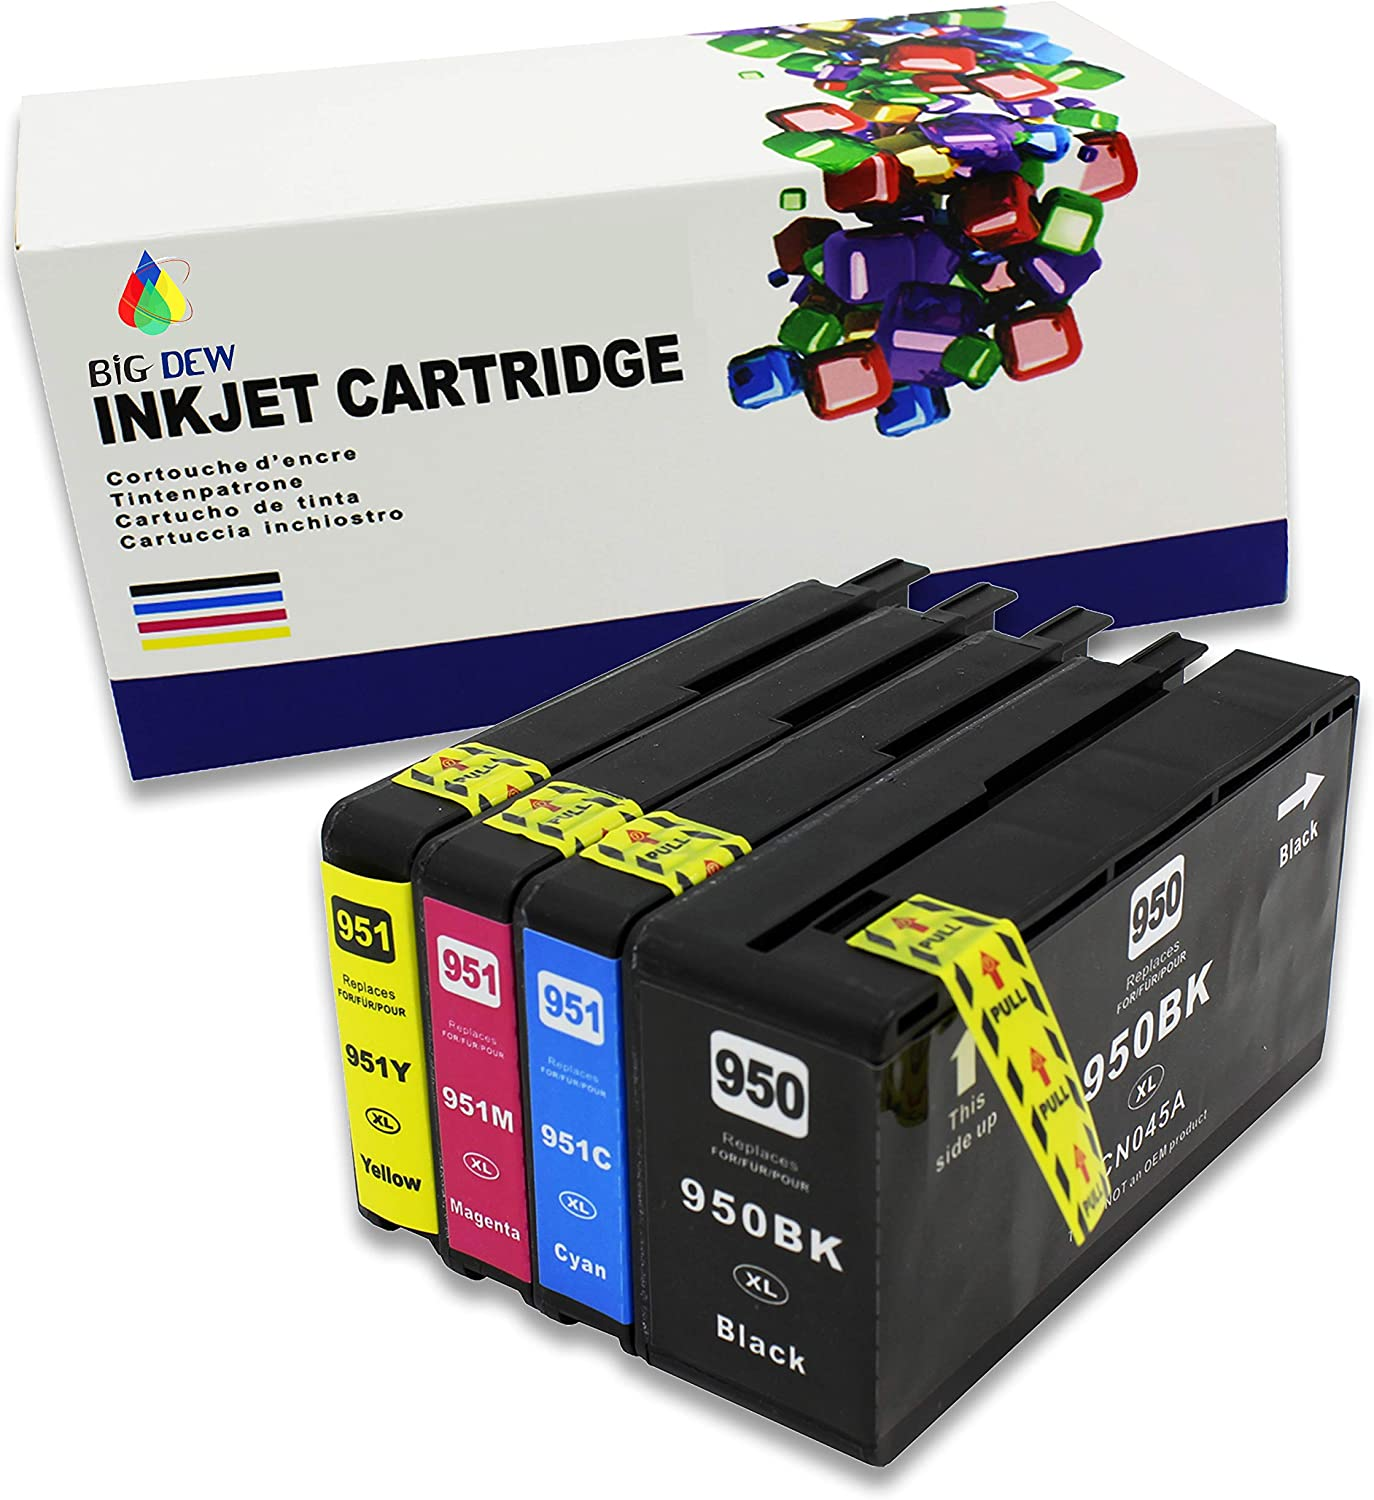 Big Dew Compaitble Ink Cartridge Replacement for HP 950 951 950XL 951XL Ink use with HP OfficeJet Pro 251dw 276dw 8100 8600 8610 8615 8616 8620 8625 8630 Printers (4-Pack)